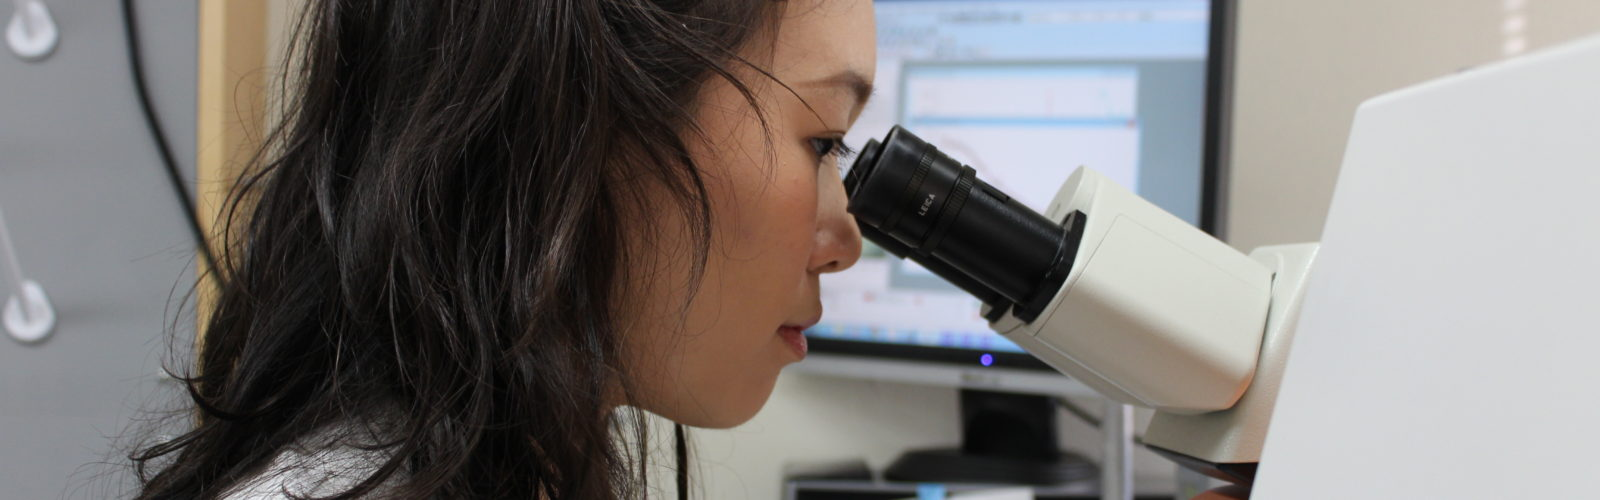 Student researcher looking through a microscope.